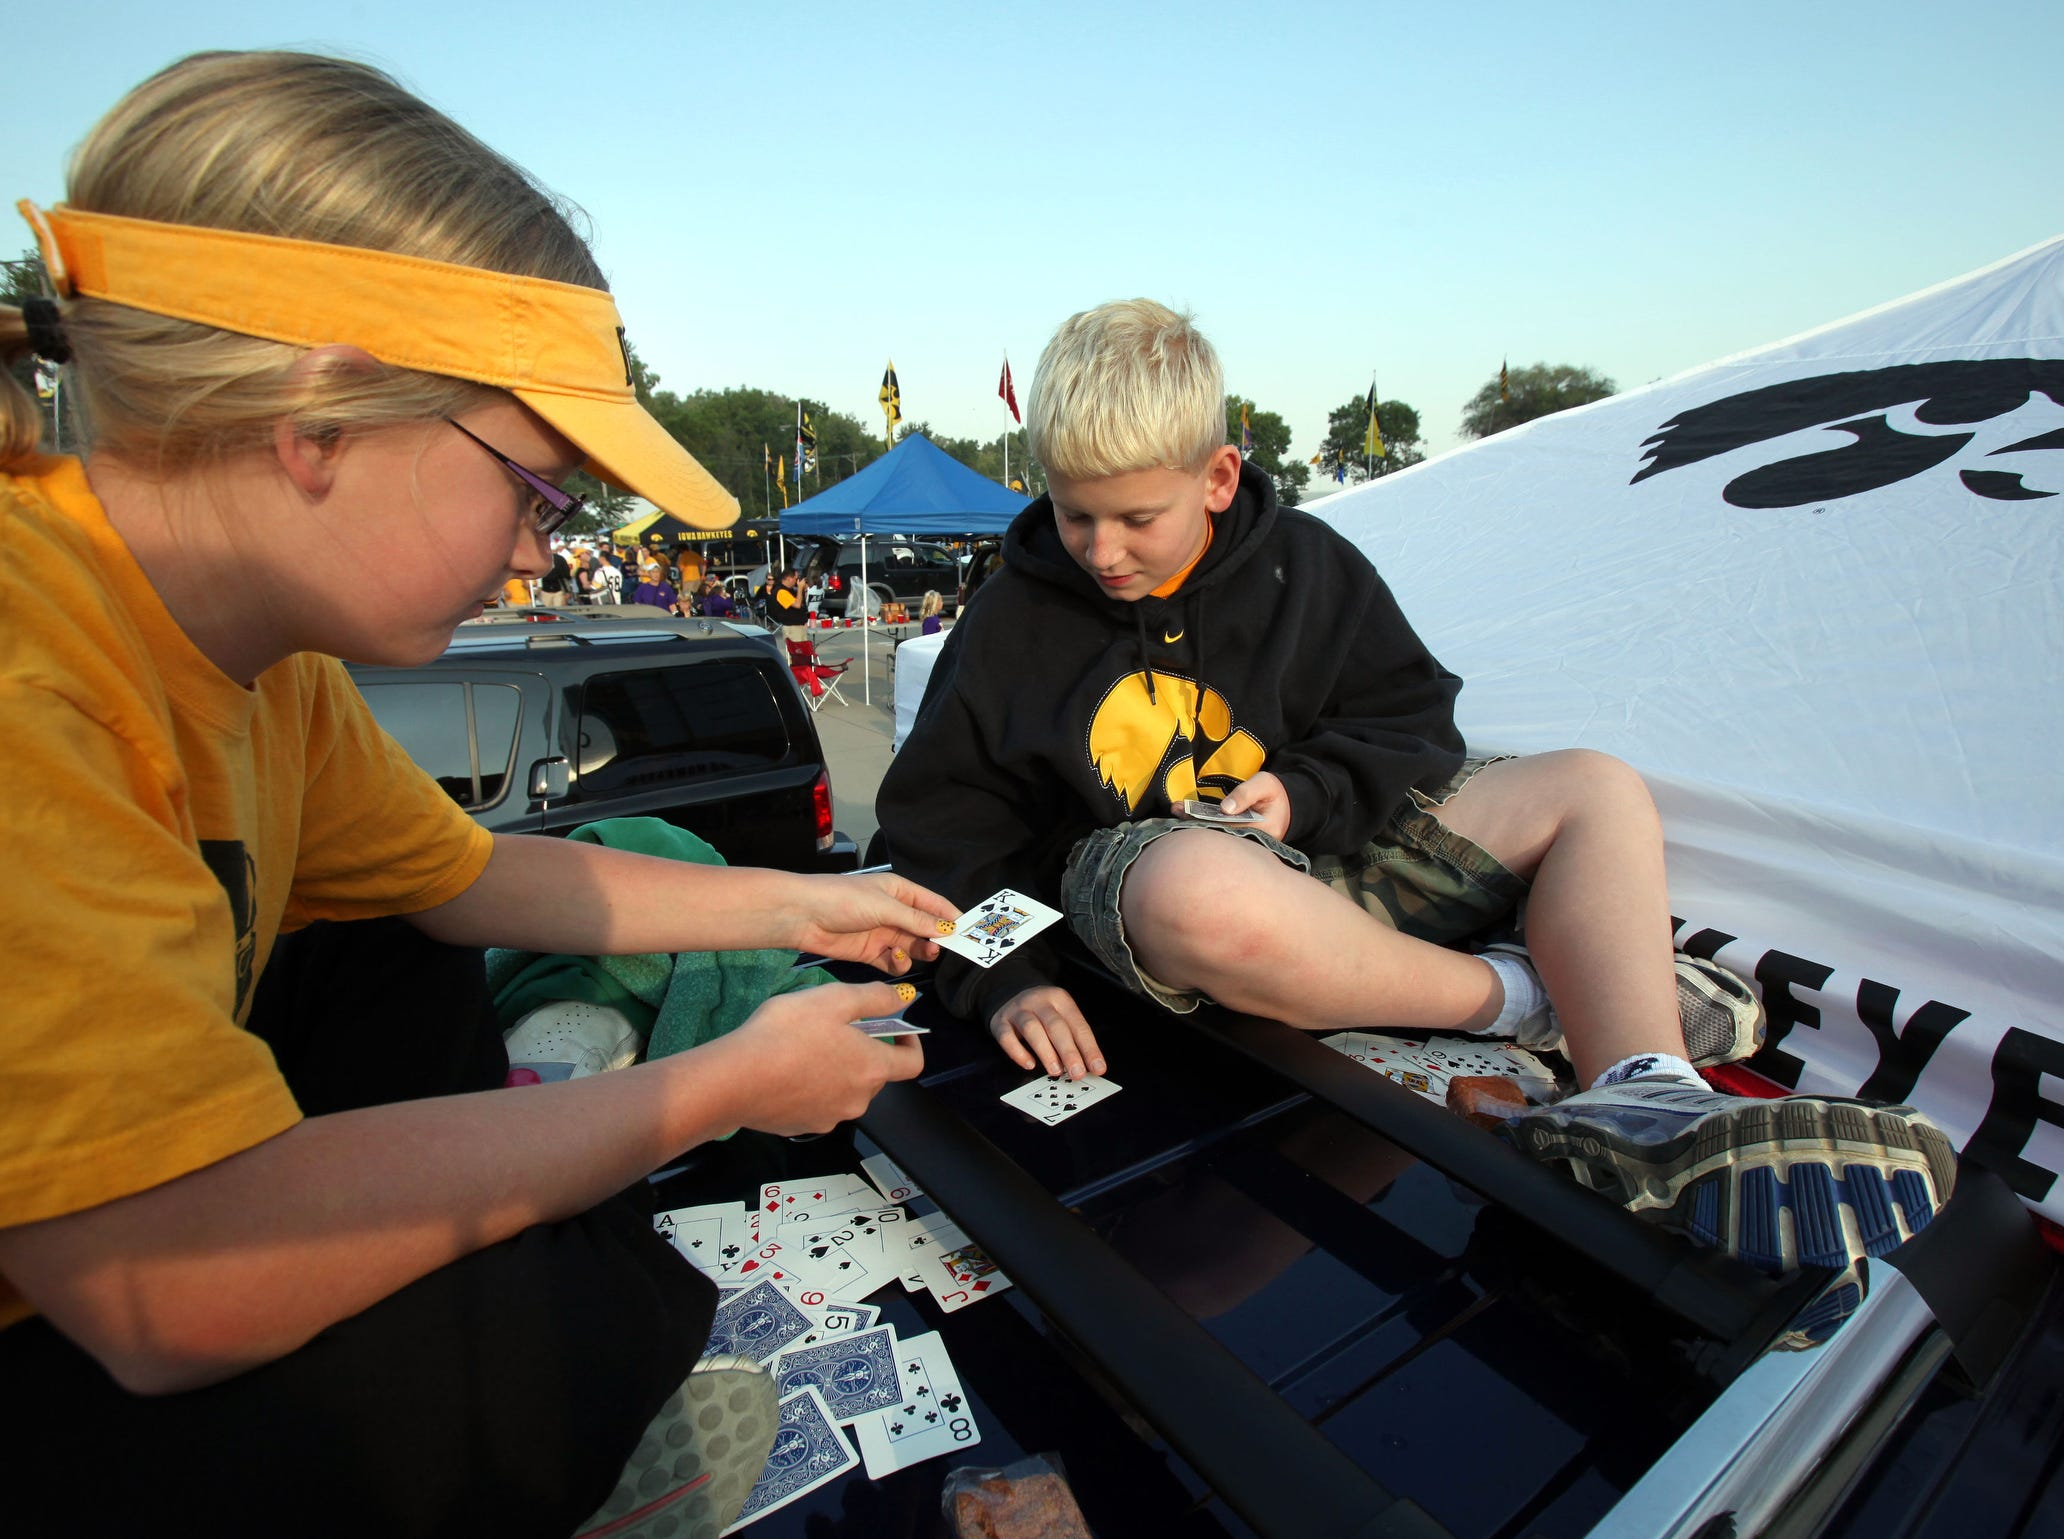 Twins Ally and Isaac Davis of Mount Pleasant play cards atop a truck while tailgating before Iowa's football season opener against Northern Iowa on Sept. 5, 2009 in Iowa City.